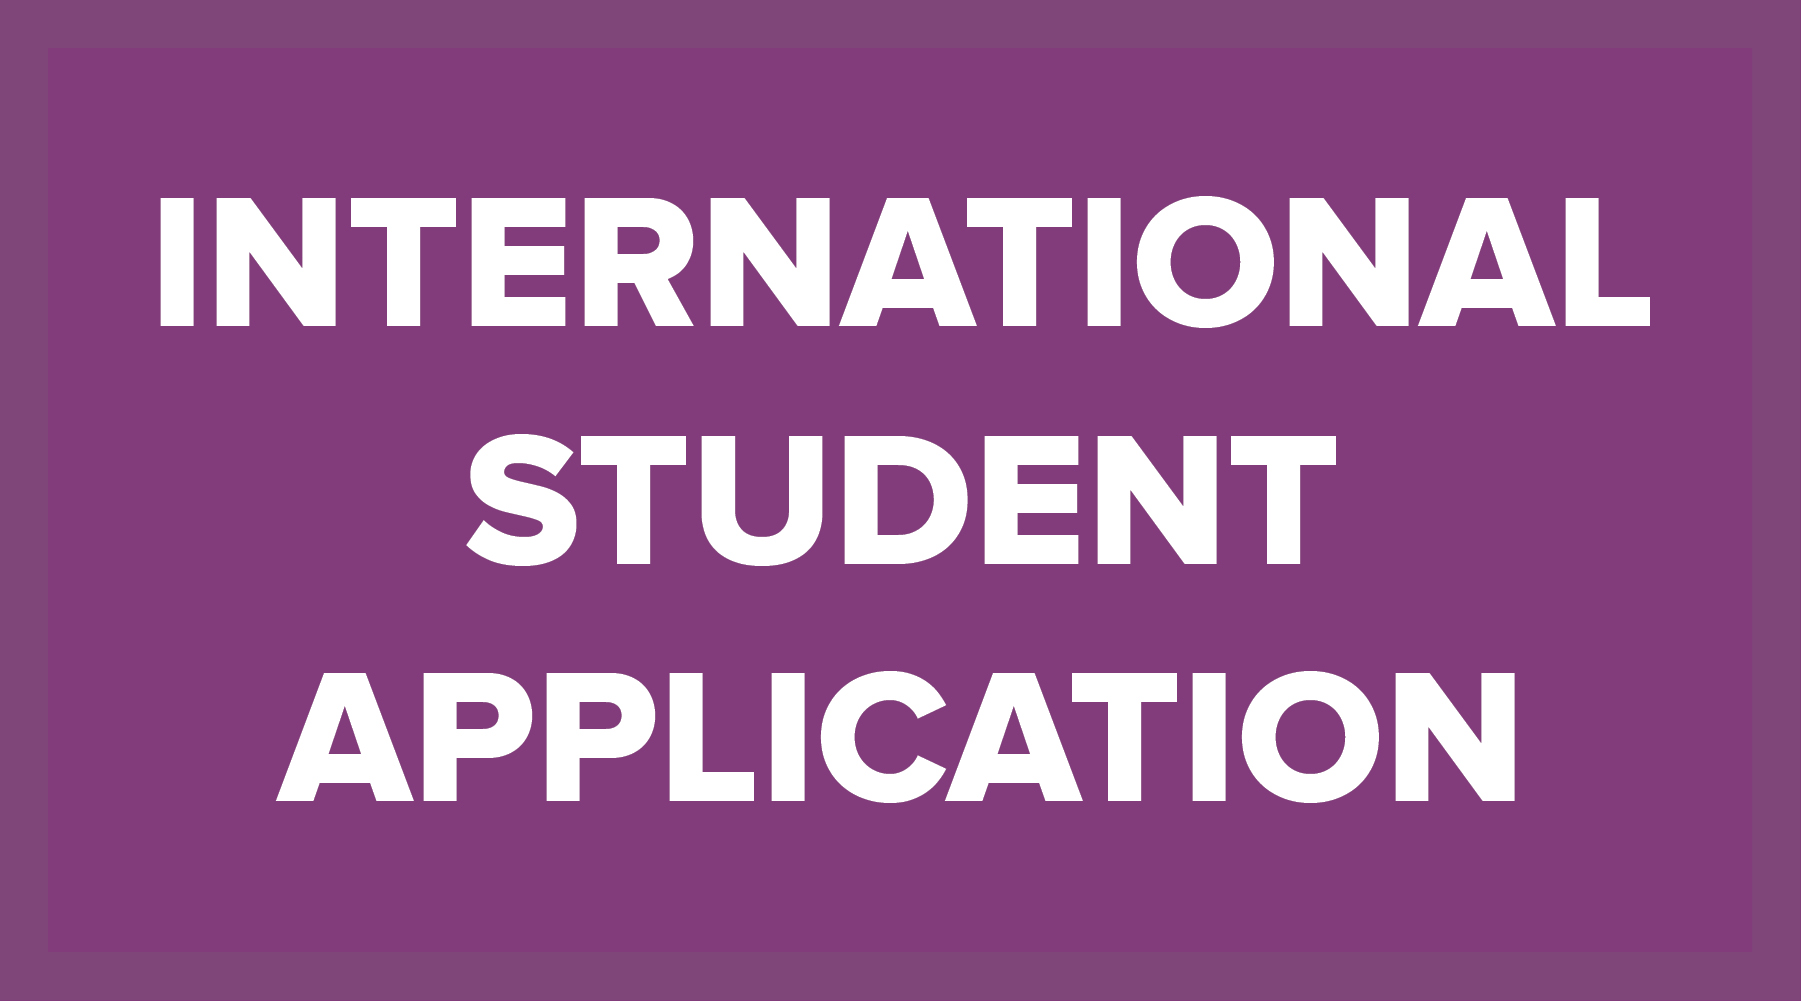 International-Student Button